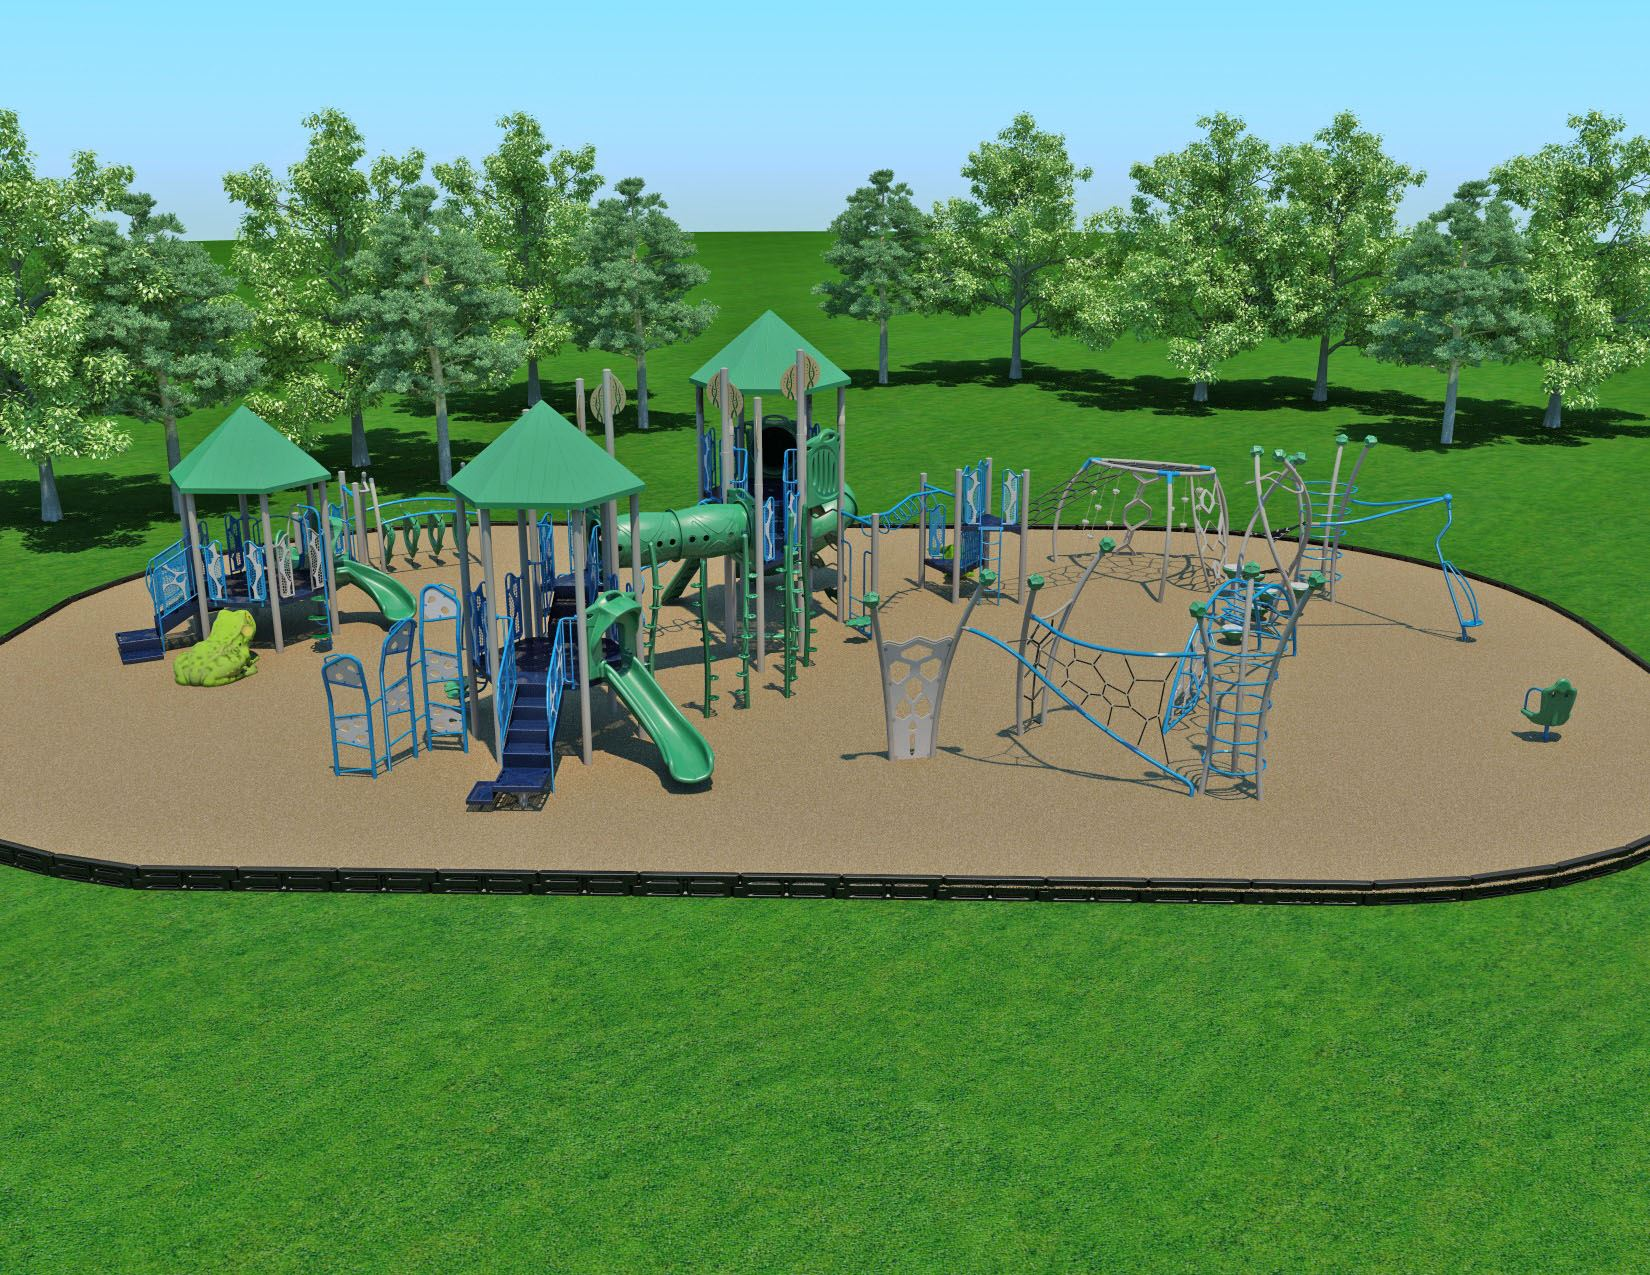 Armstrong Park artist rendering of playground